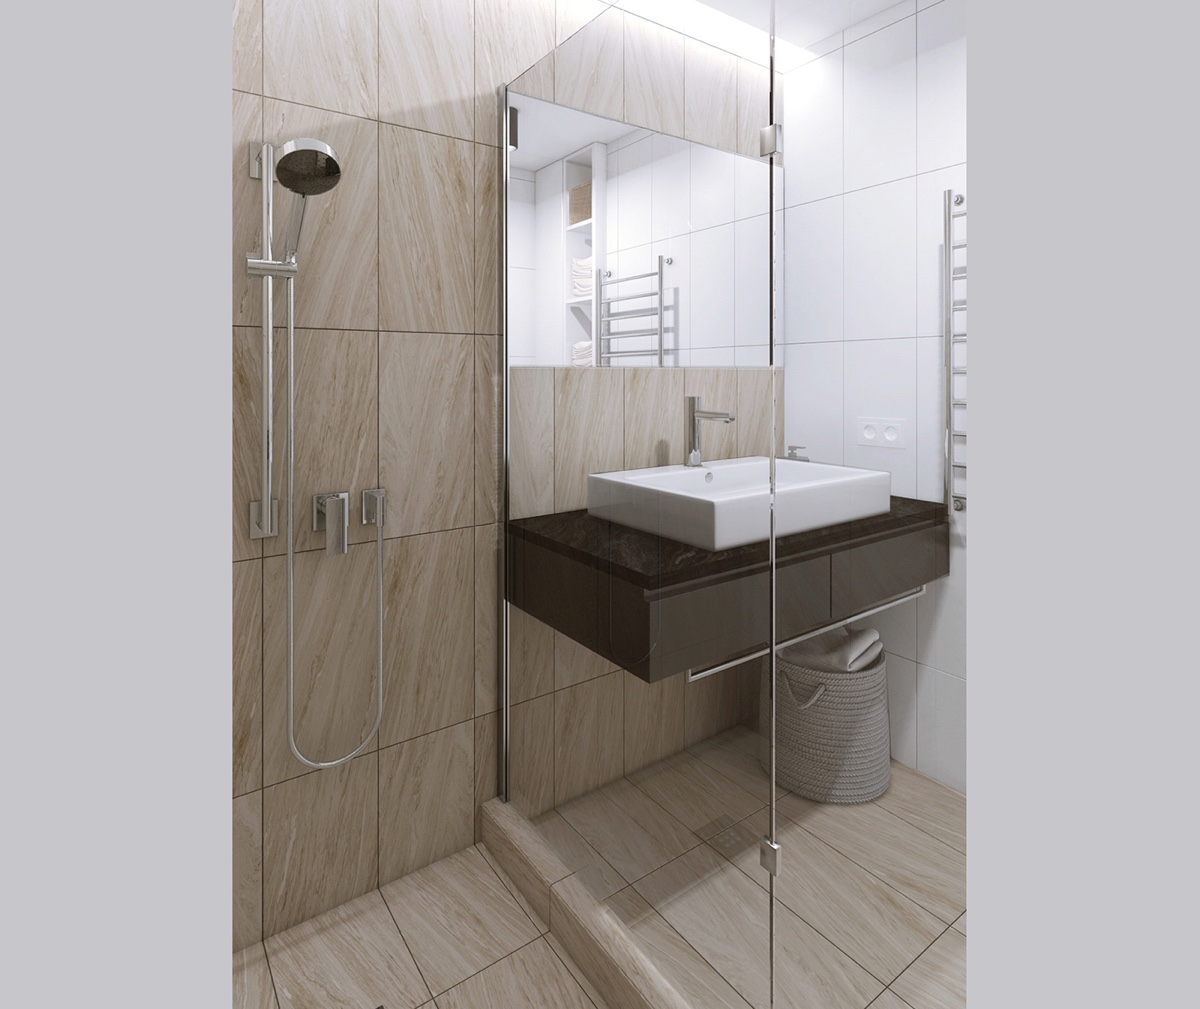 bathroom-tile-with-wood-grain-texture